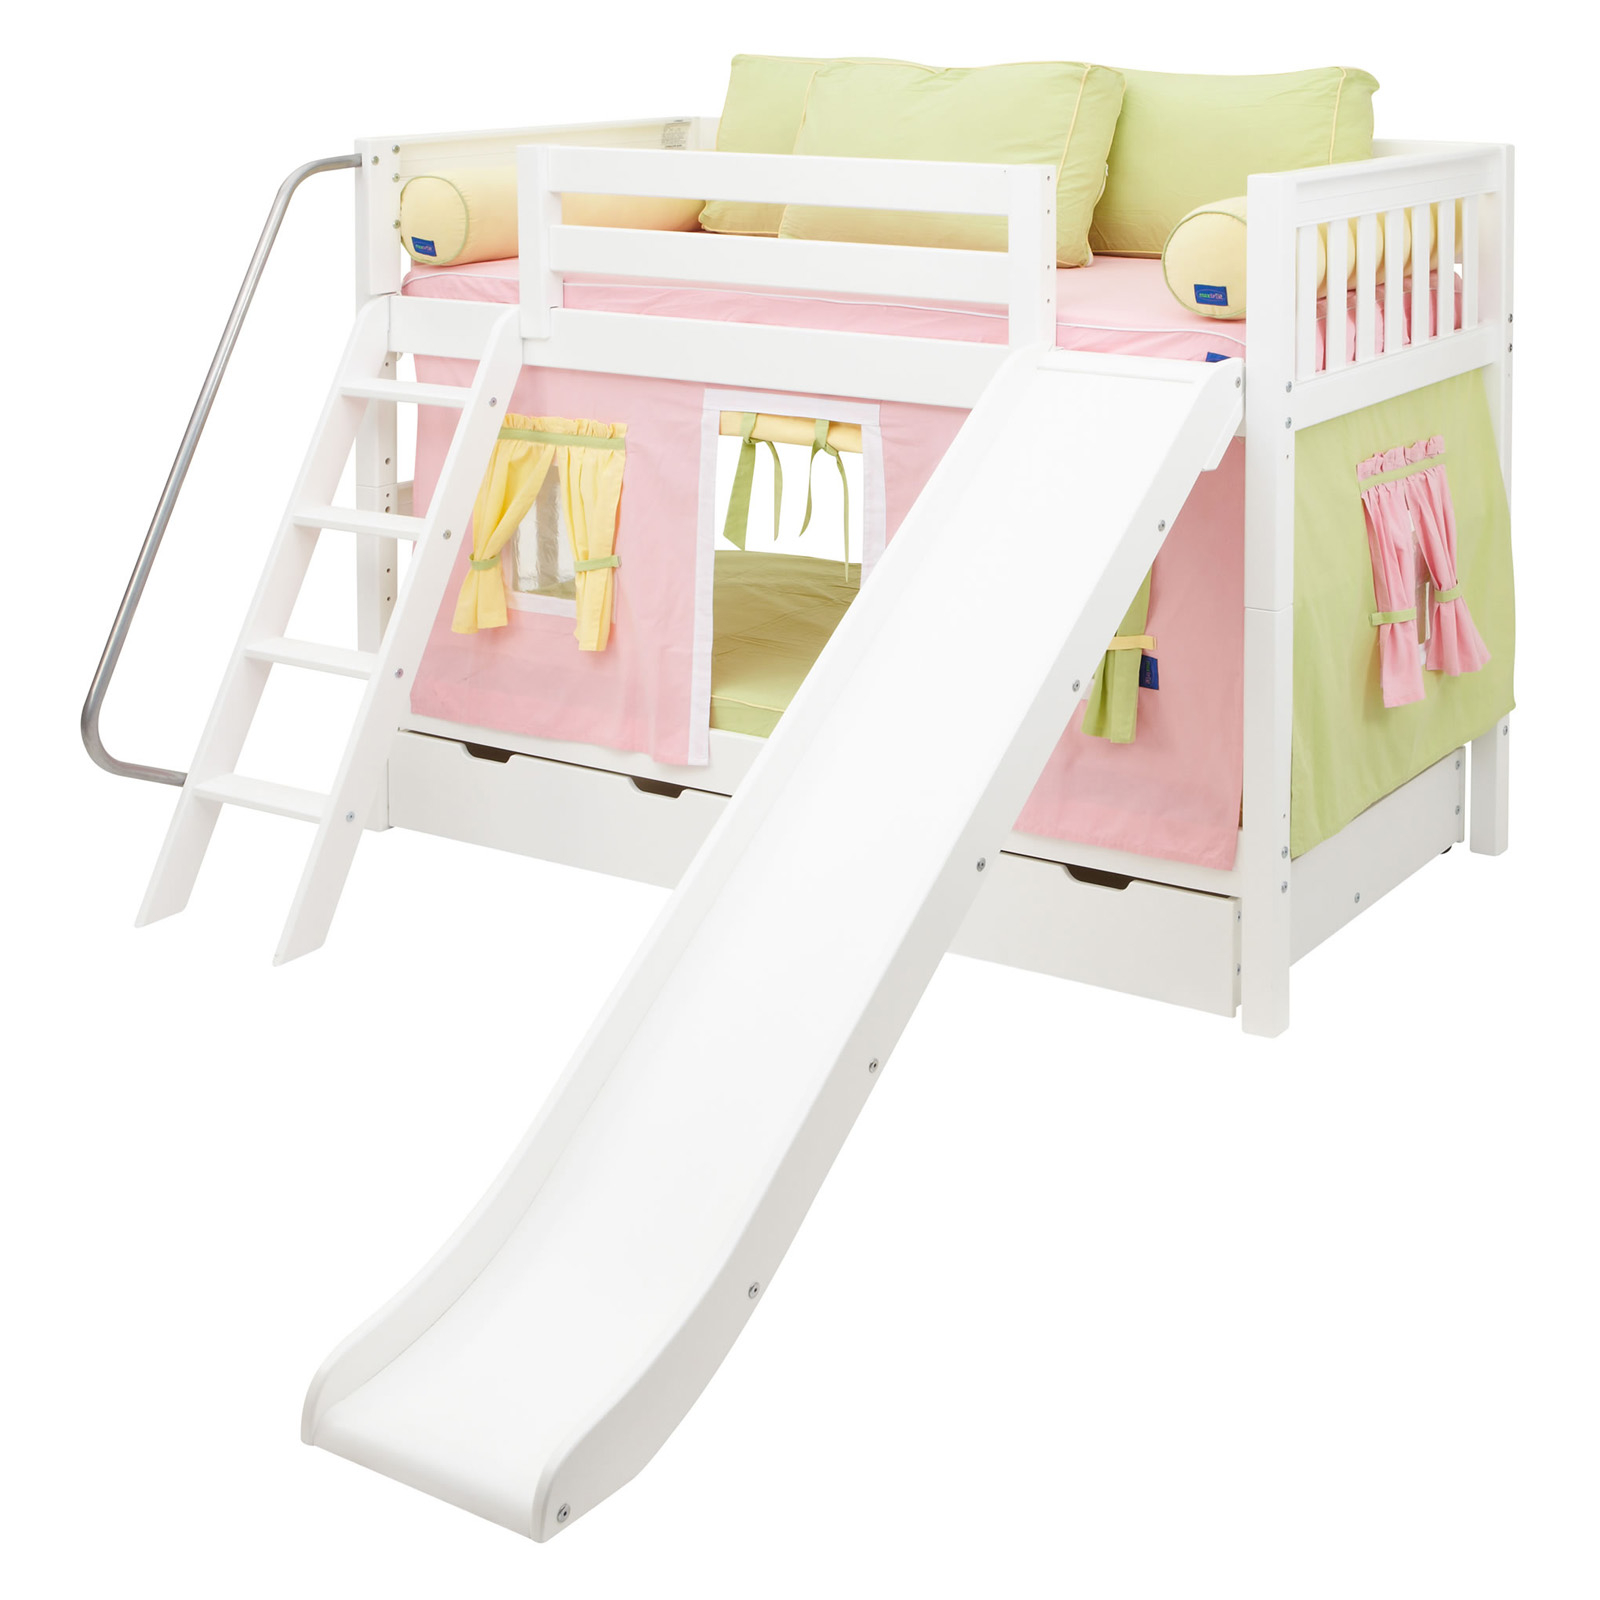 Laugh girl twin over twin slat slide tent bunk bed  sc 1 st  Foter & Twin Over Full Bunk Bed With Slide - Foter